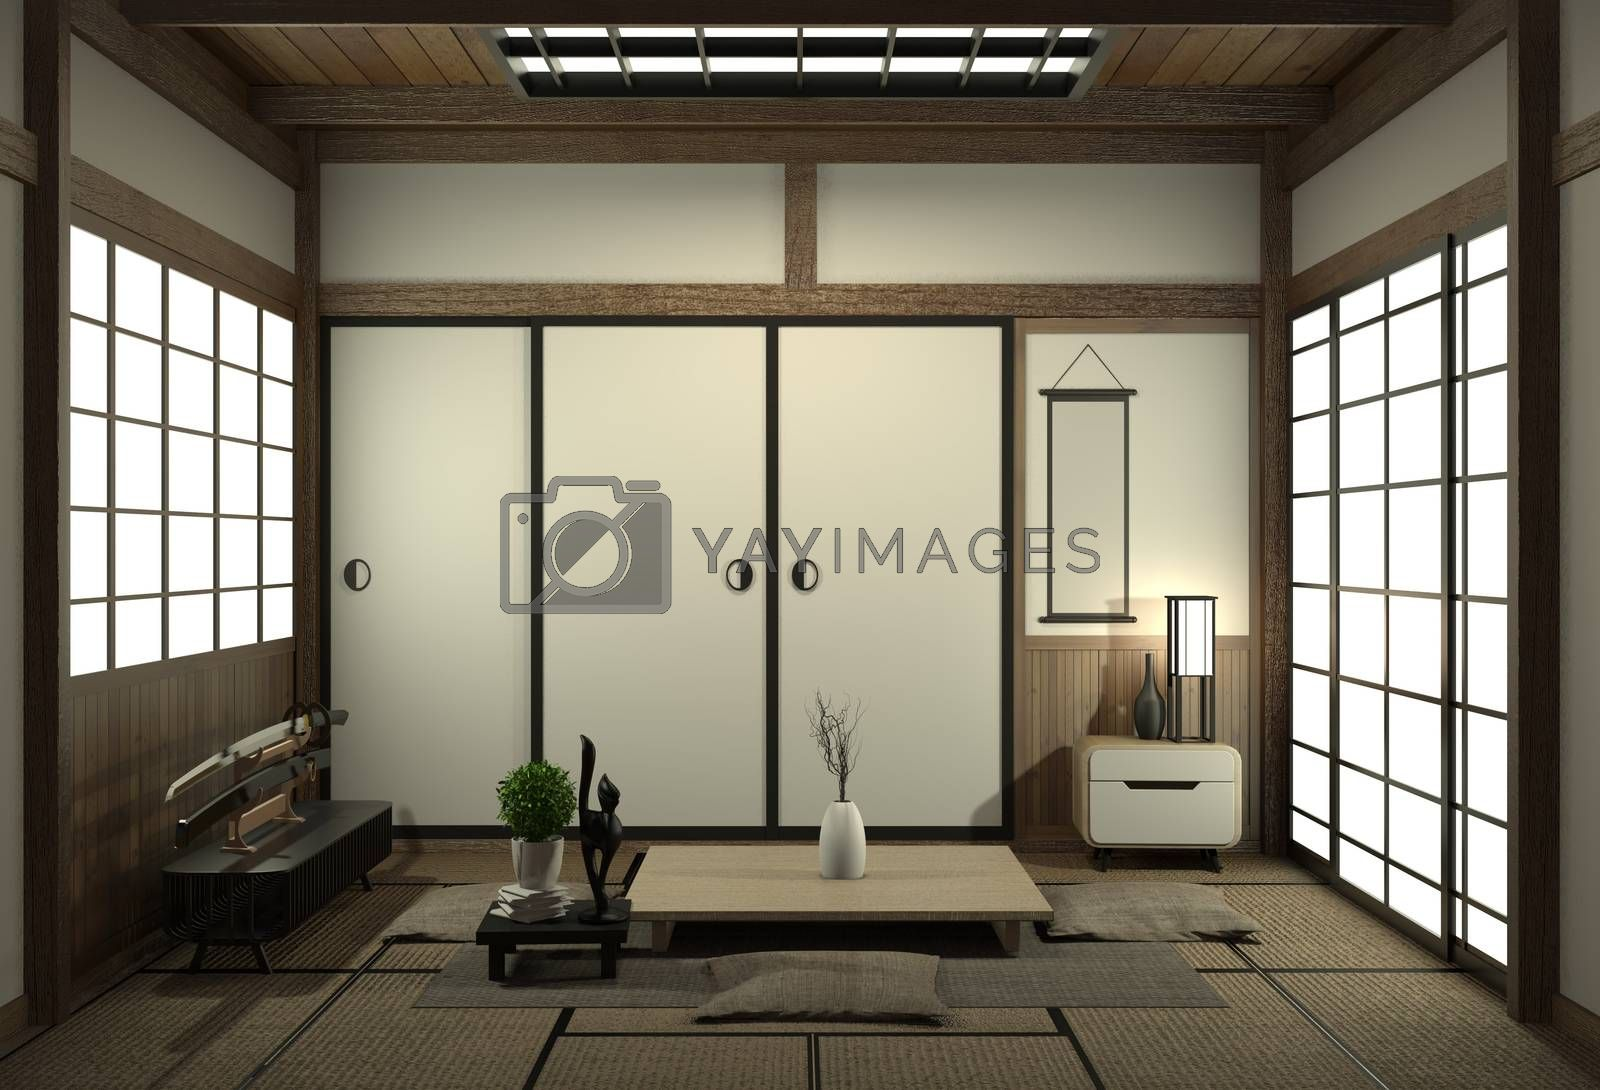 Living room interior design with cabinet in shelf wall design and decoration japan style.3D rendering